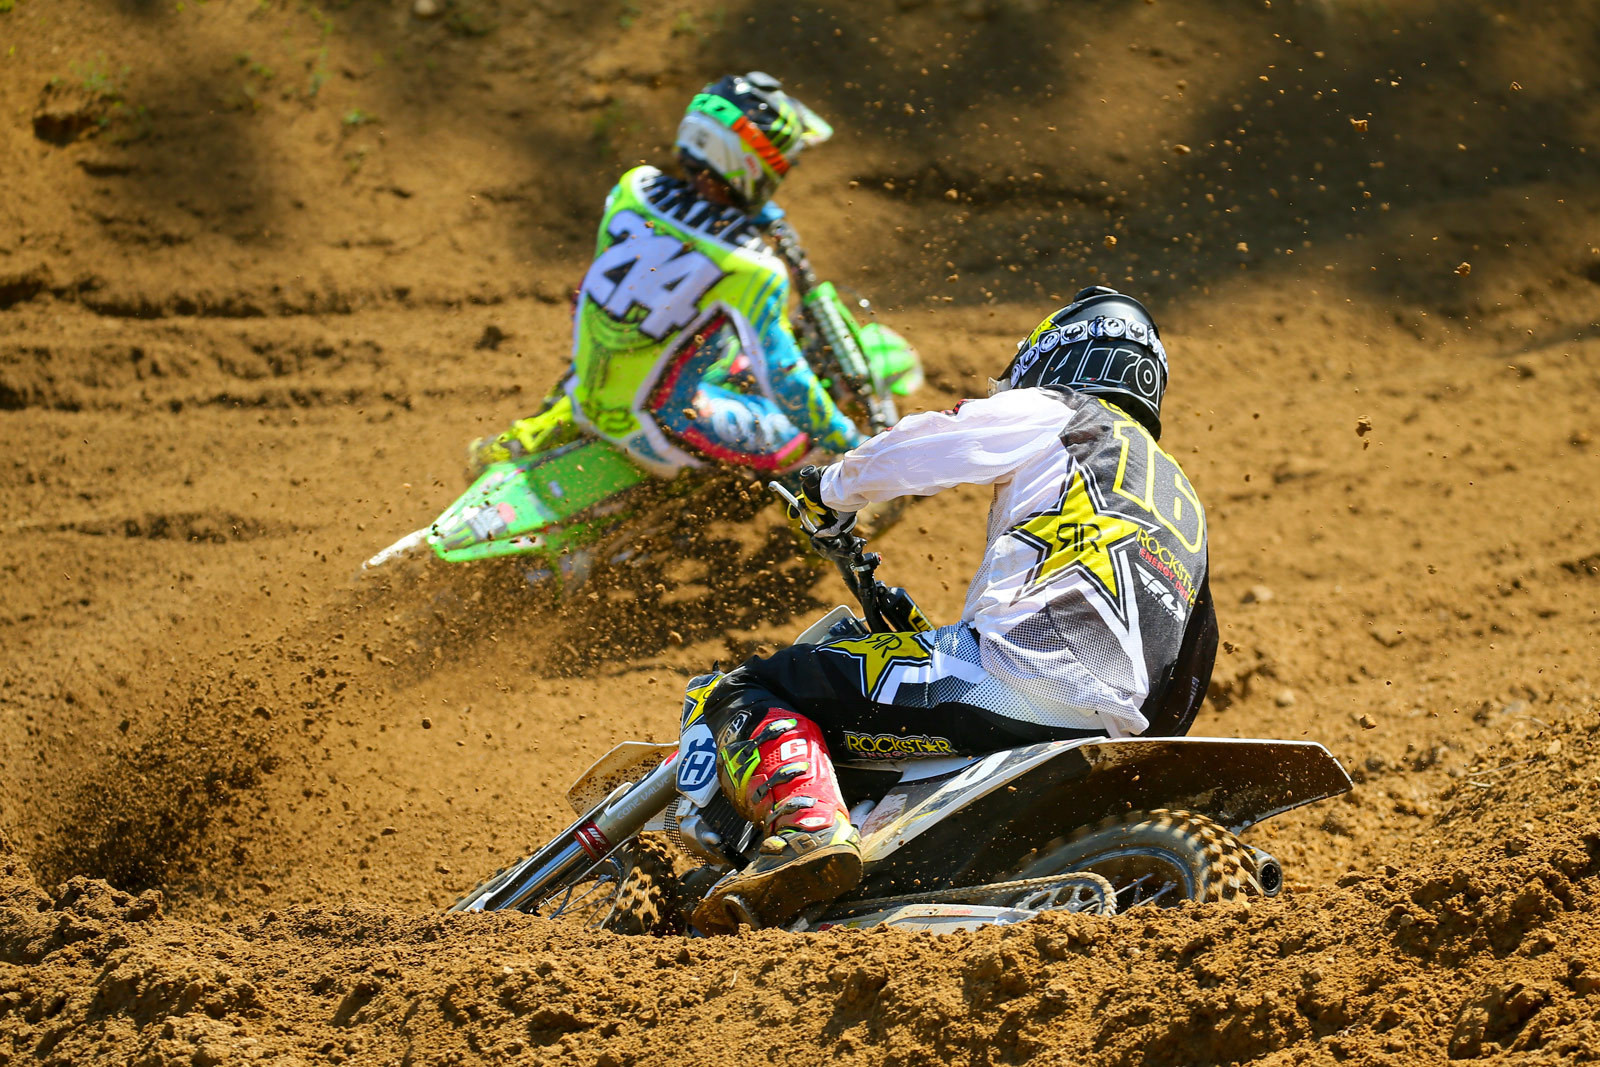 Austin Forkner and Zach Osborne - Photo Blast: Budds Creek - Motocross Pictures - Vital MX